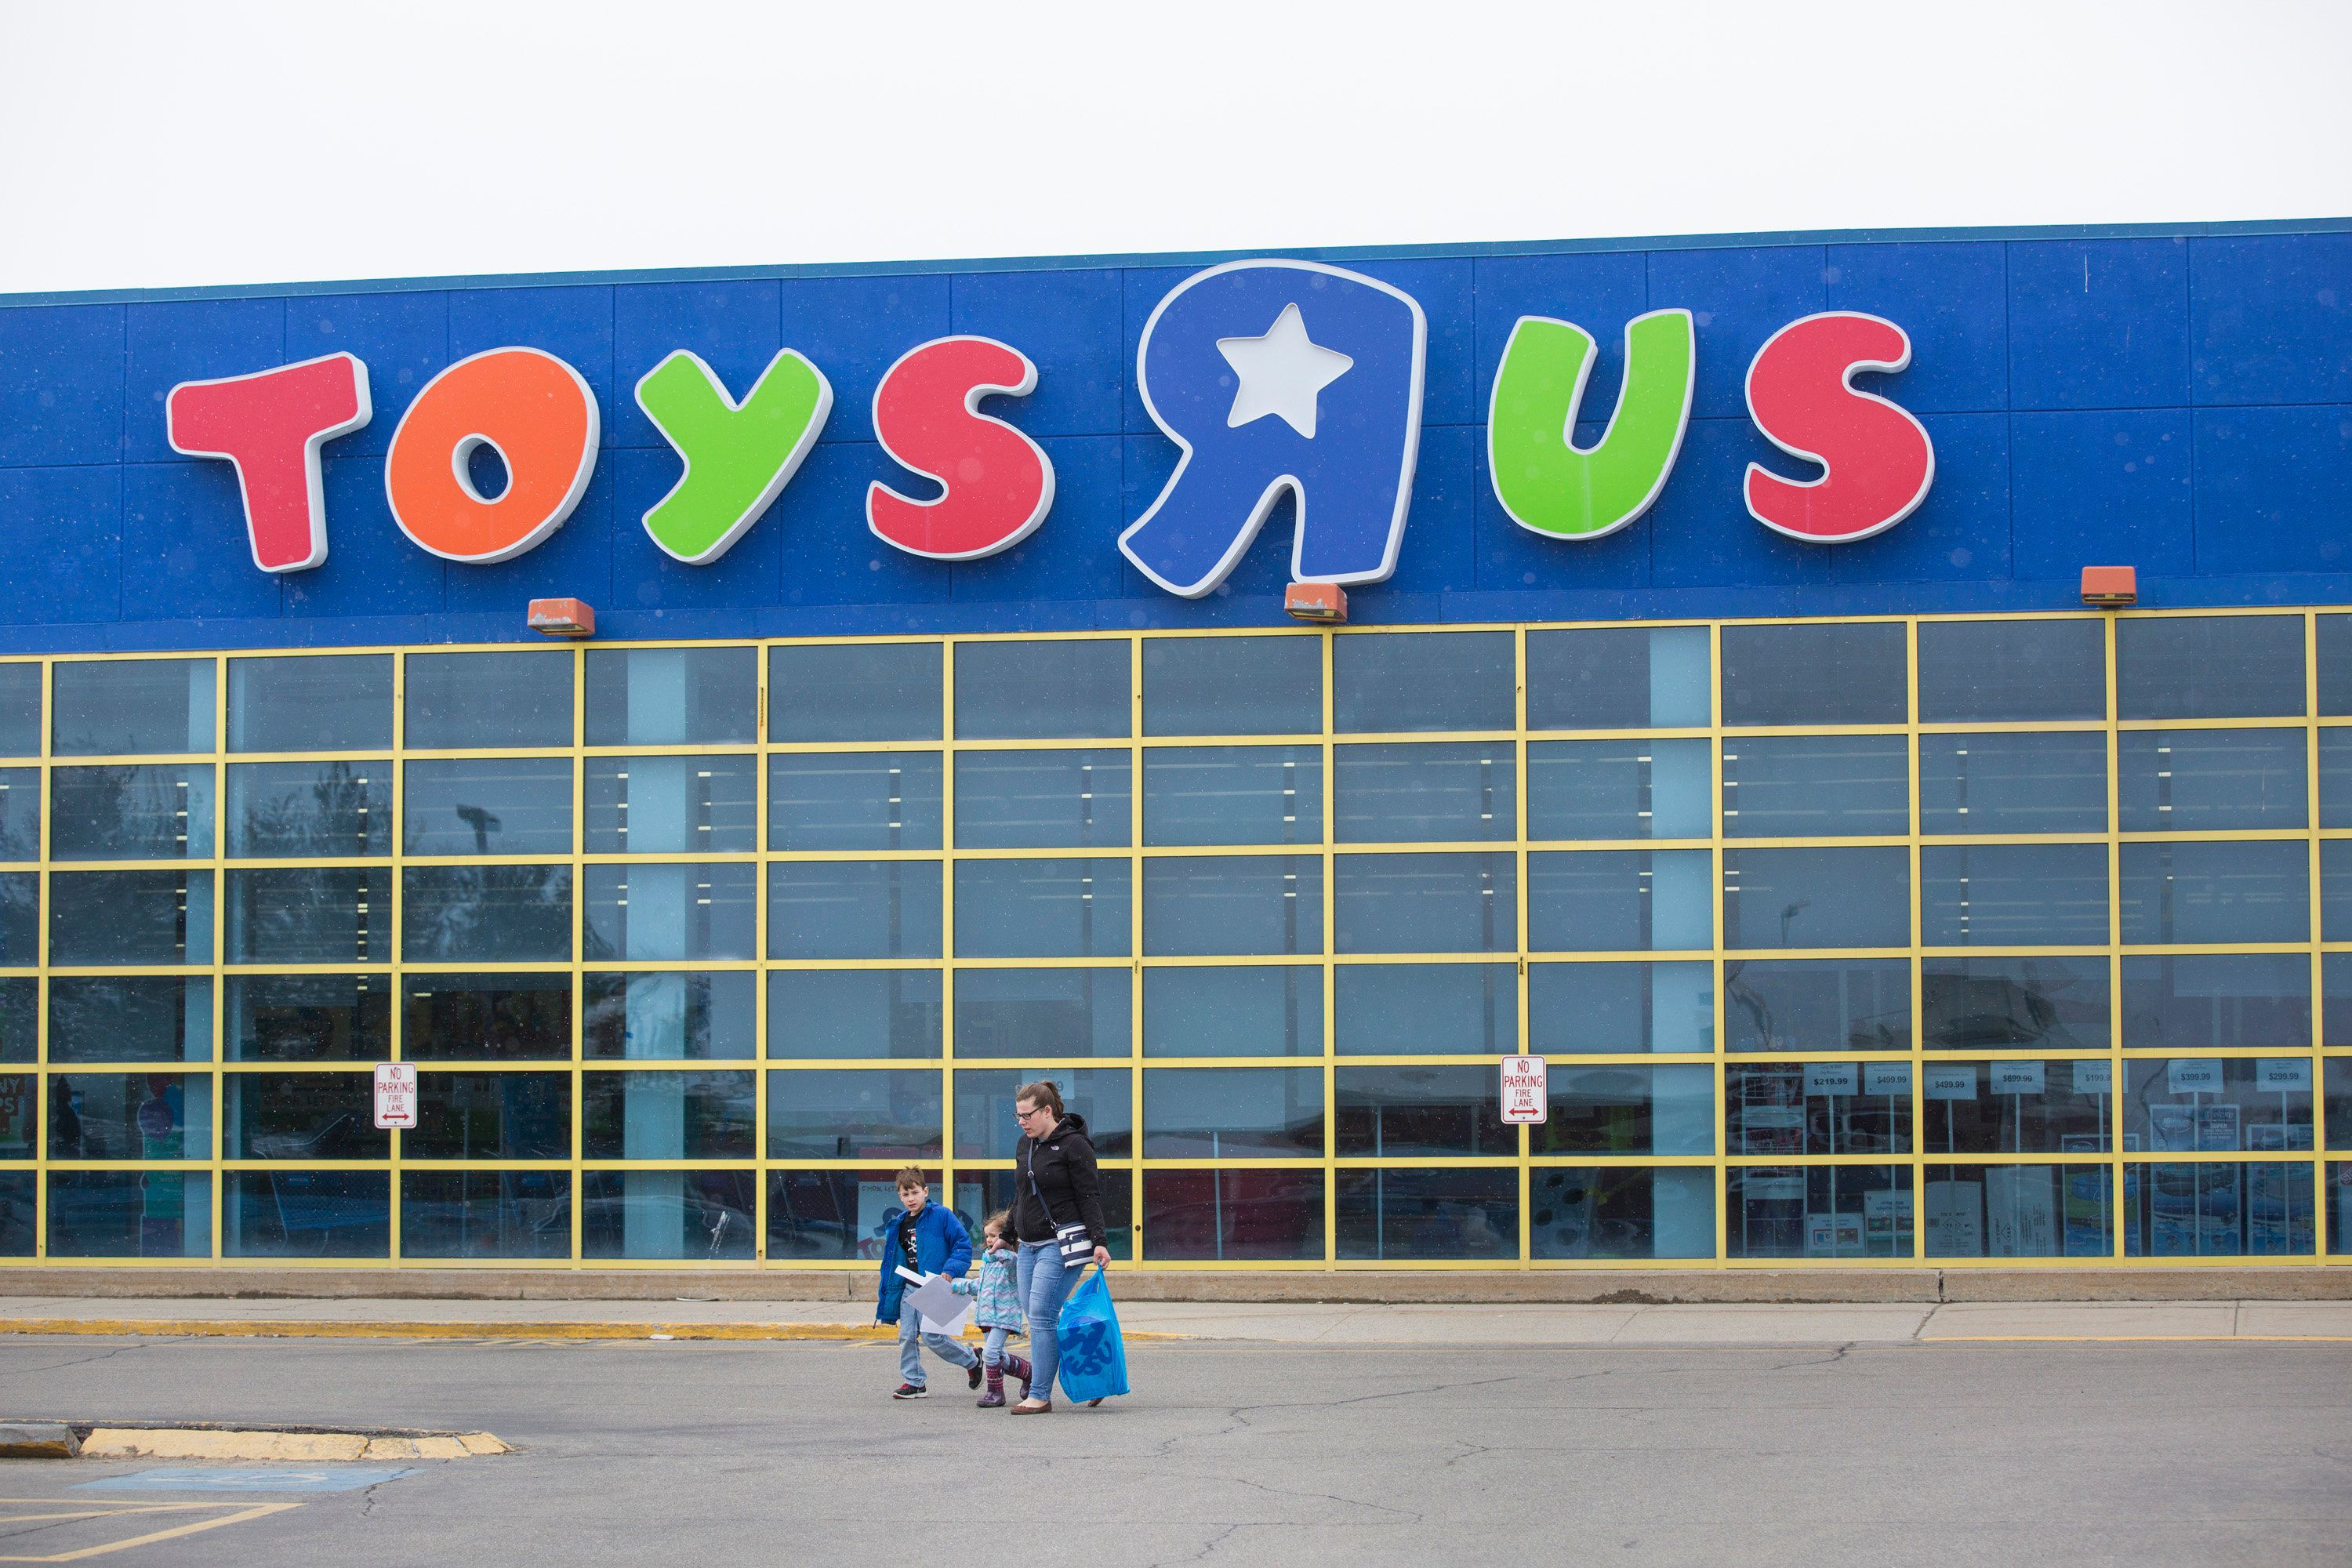 SOUTH PORTLAND, ME - MARCH 22: Vicki Brackley of Sabattus leaves Toys R Us on Thursday, March 22, 2018, with her children Declan, 7, and Sage, 3. She said they drove down to the South Portland store because they had gift cards to use and said she was disappointed that the liquidation sale that was supposed to start today had been postponed. (Photo by Derek Davis/Portland Press Herald via Getty Images)